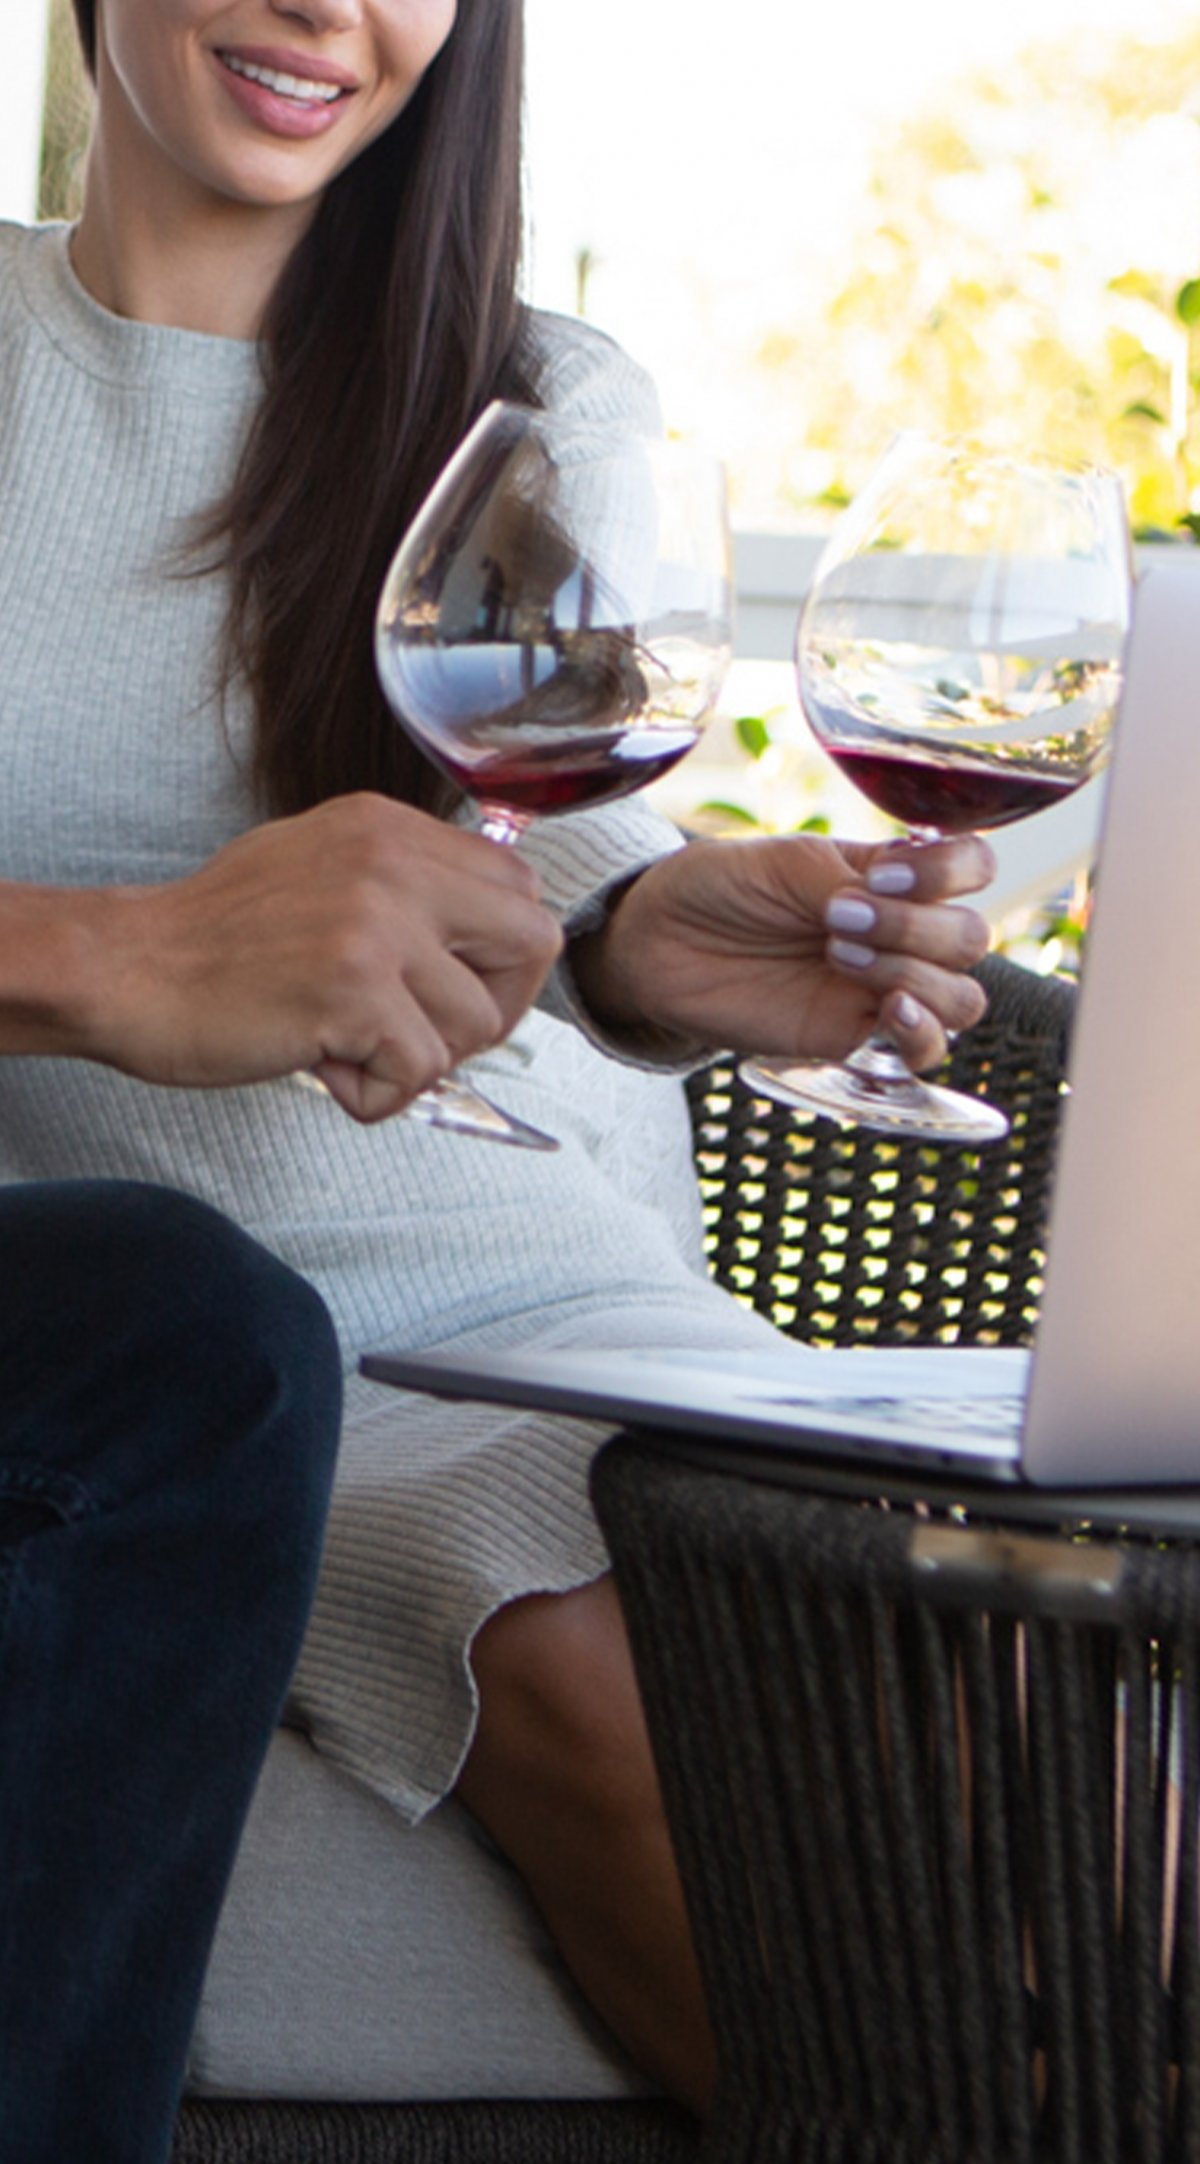 Woman with wine in front of a computer screen